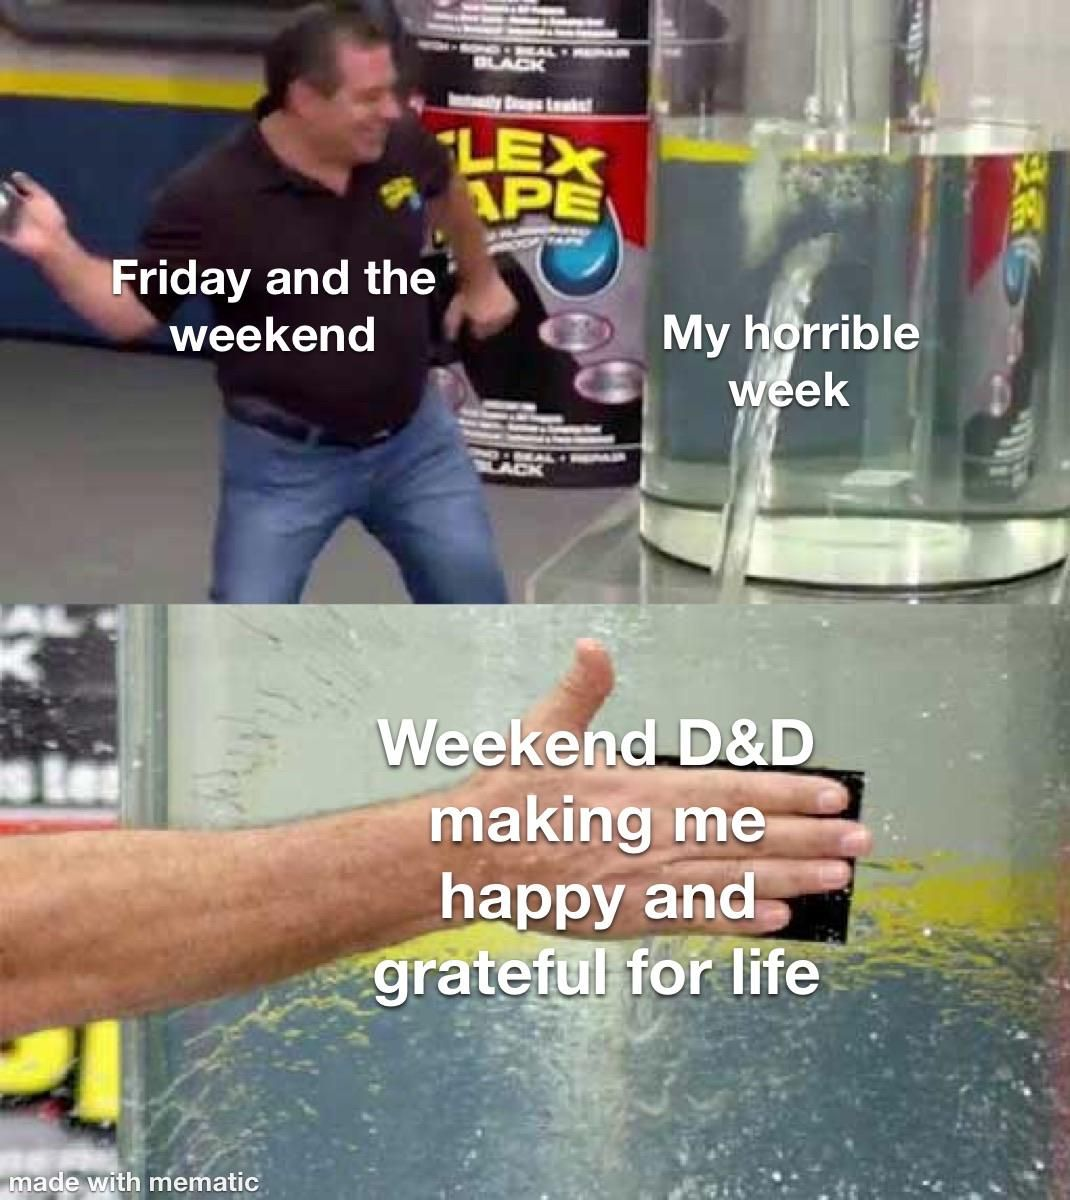 Happiness noises  . . . #dnd #rpg #tabletop #geek #miniatures #dungeonsanddragons #tabletoprpg #boardgames #dnd5e #criticalrole #DM #pathfinder #dungeons #dragons #paintingminis #paintingminiatures #roleplay #roleplaying #tabletoproleplaying